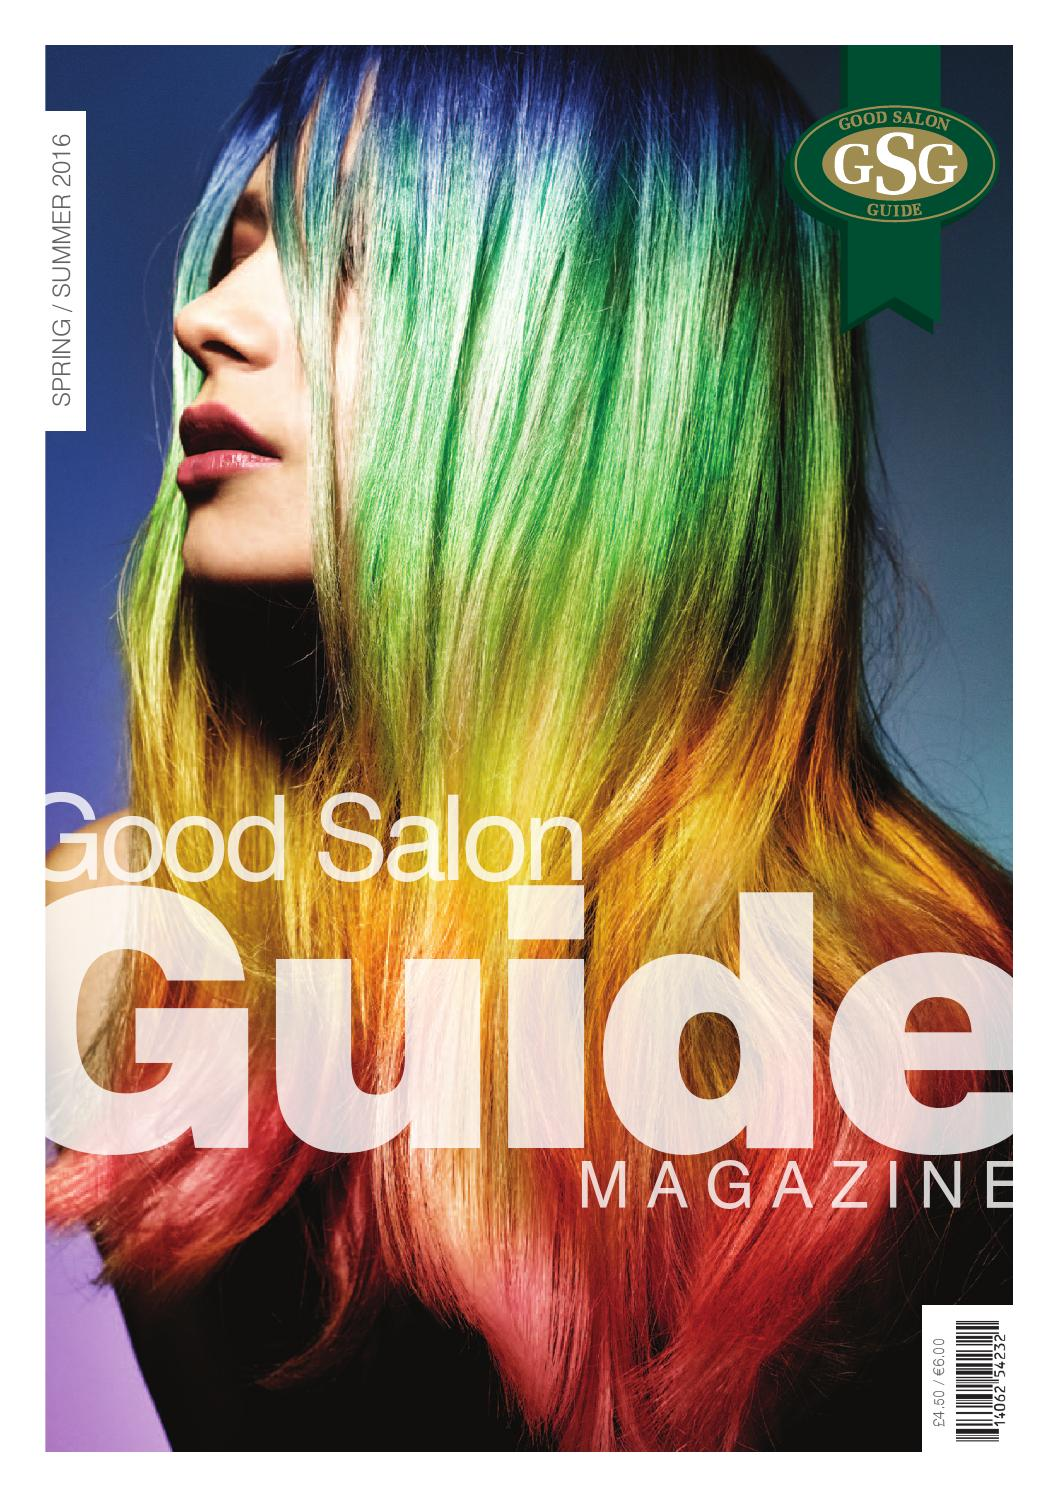 Good Salon Guide Spring/Summer 2016 by Good Salon Guide - issuu